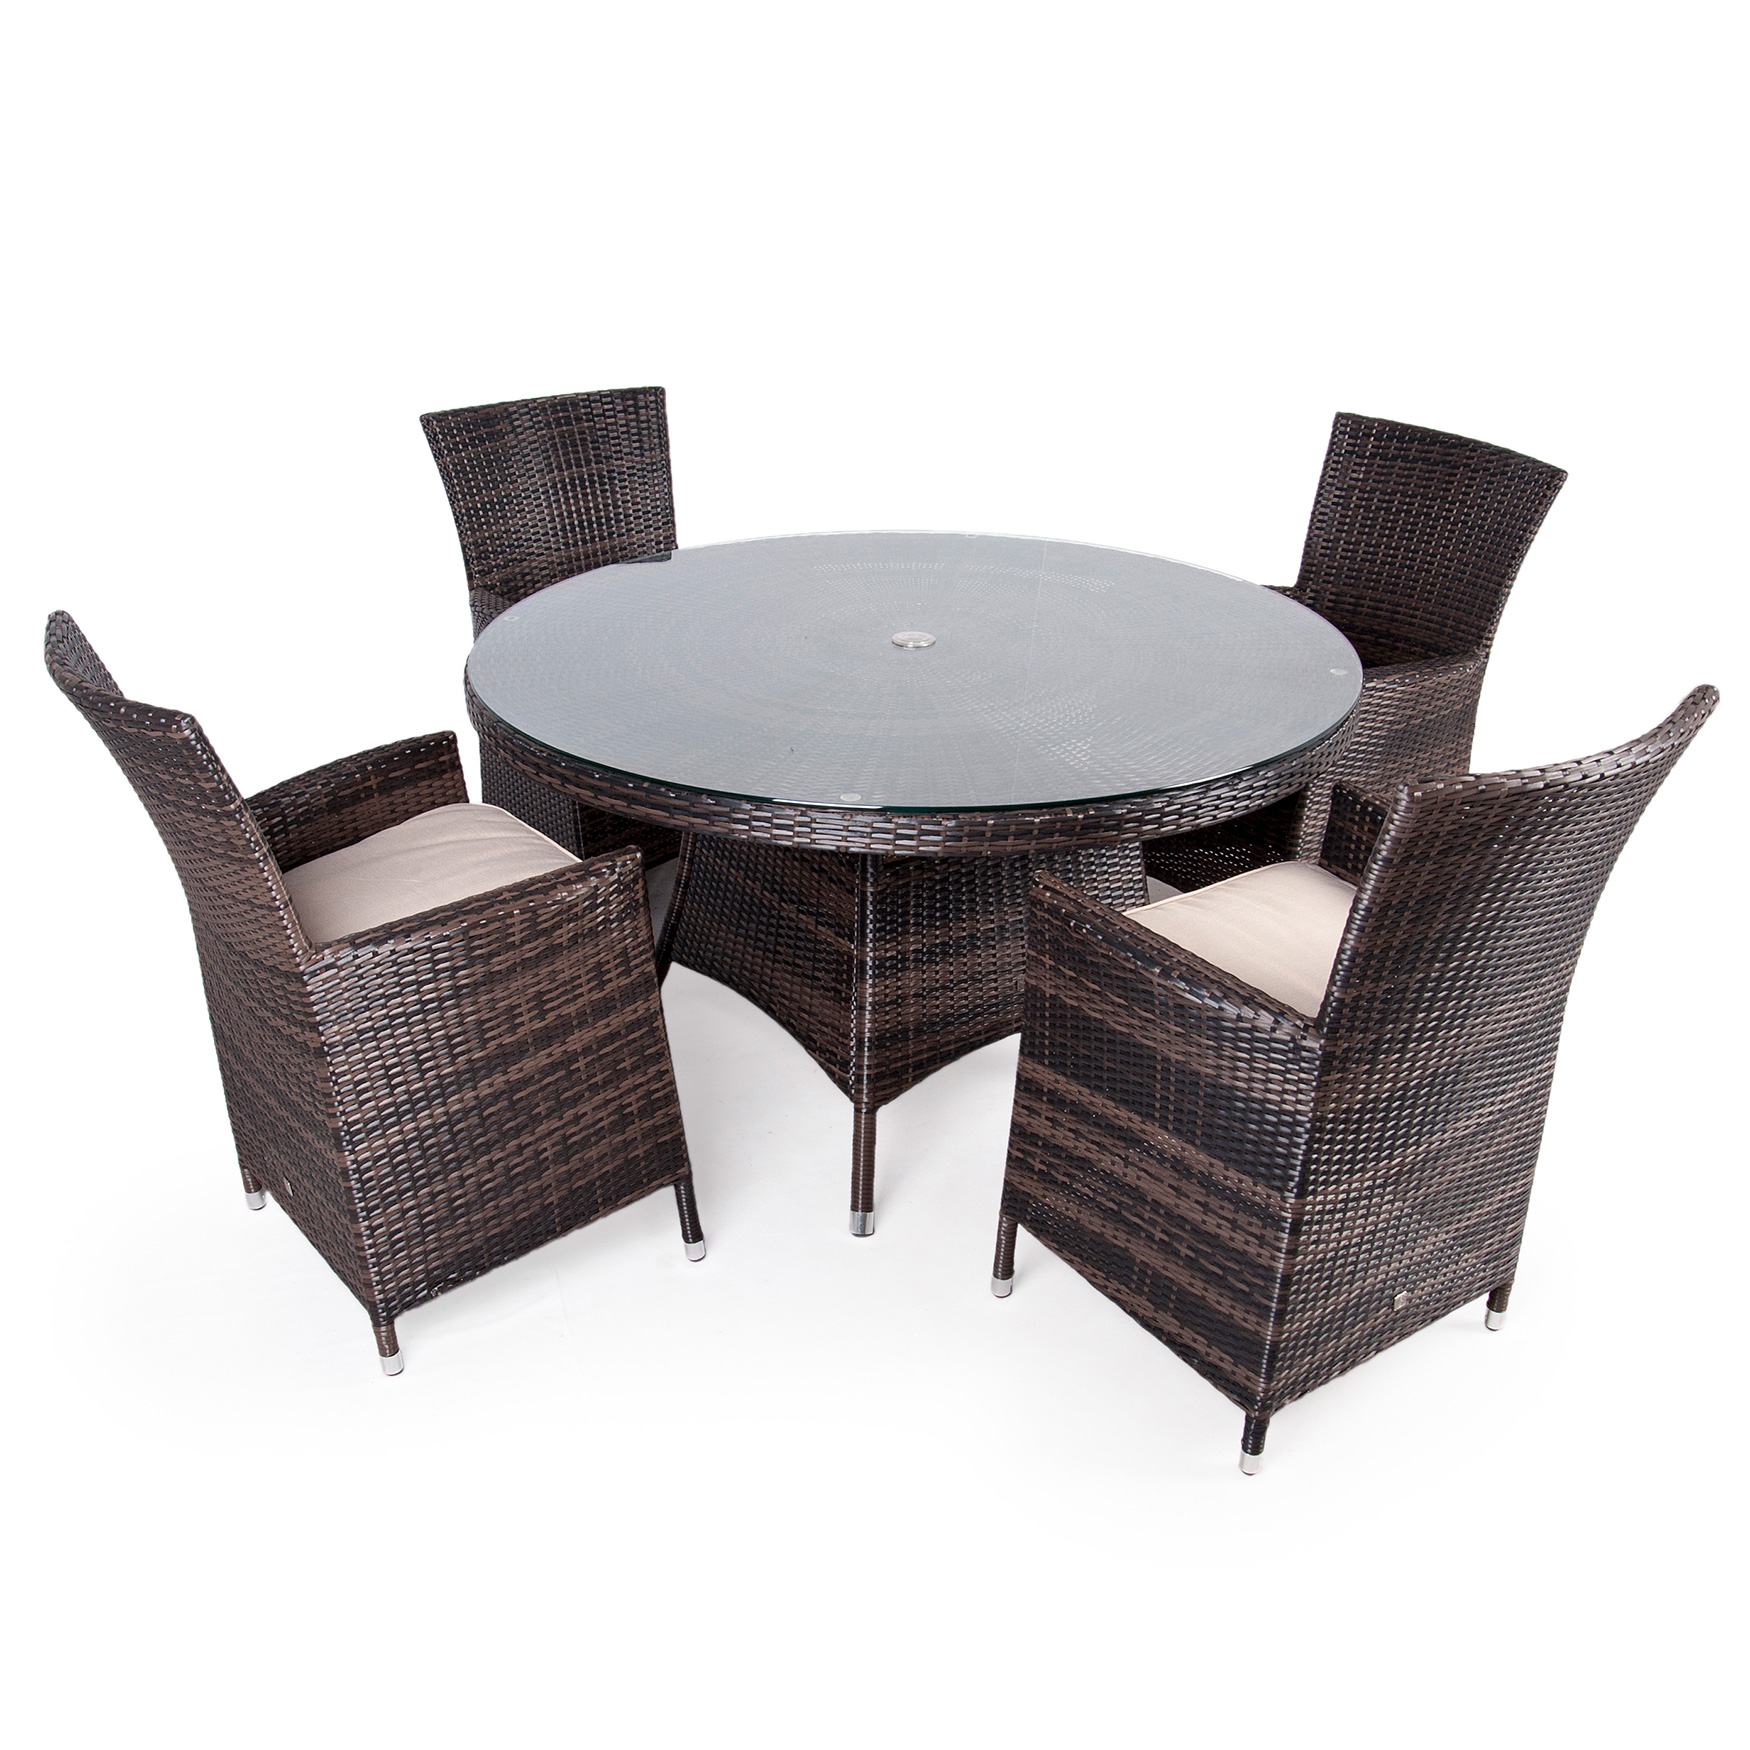 Outdoor Garden Furniture Rattan 4 Armchair Table 135cm Round Dining Patio Set